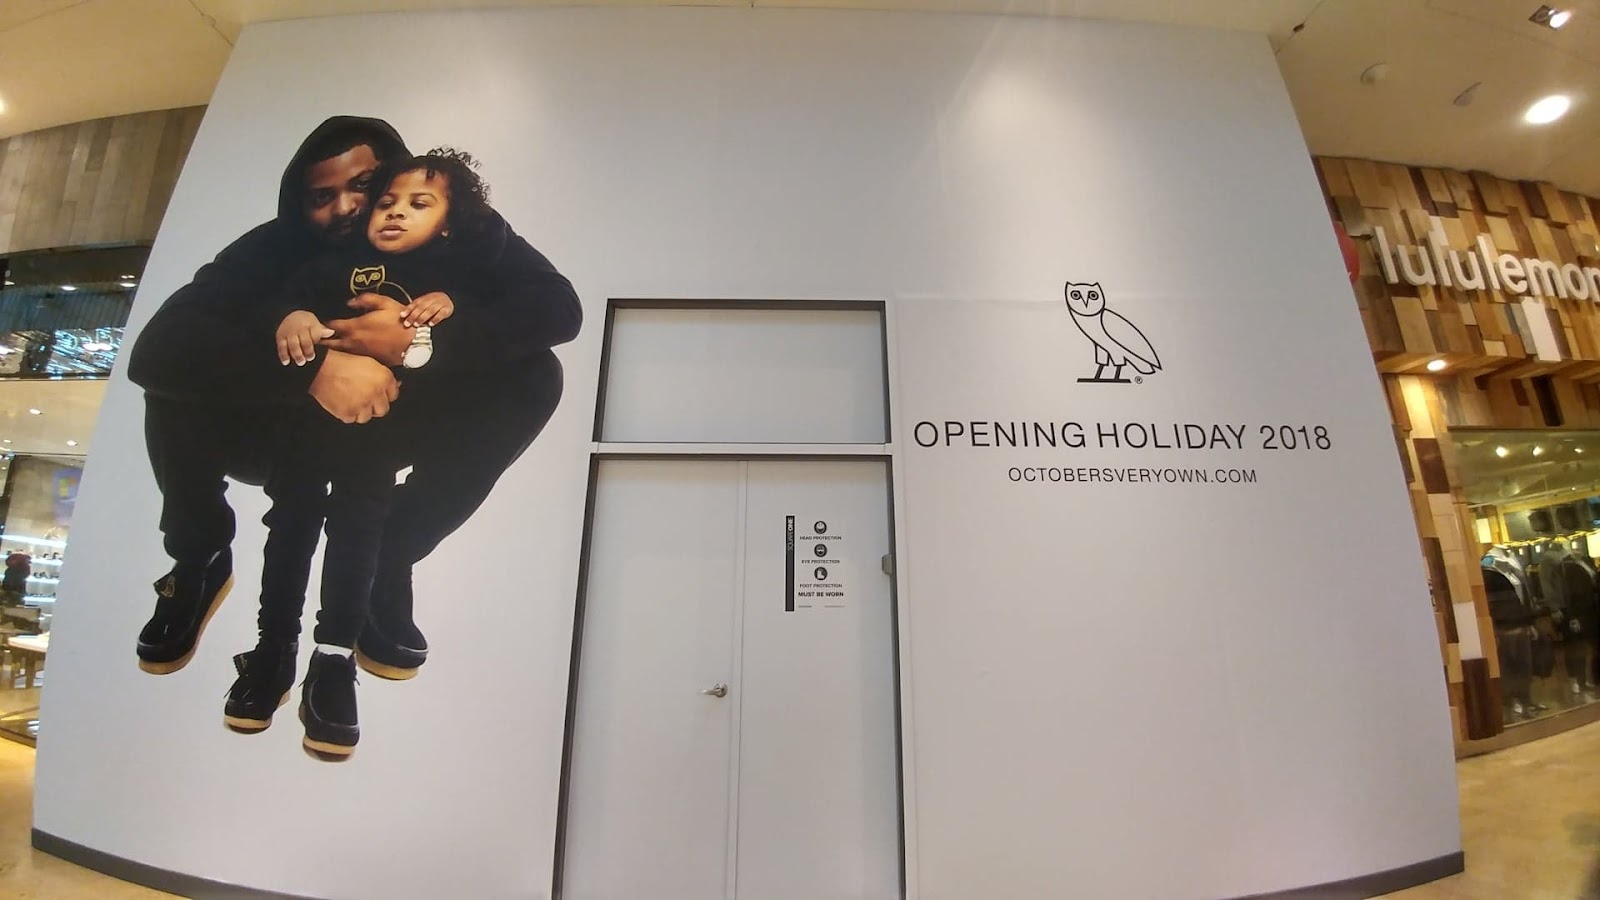 dceacc4fe1ae A Store Associated With a Beloved Rapper is Coming to Square One in ...